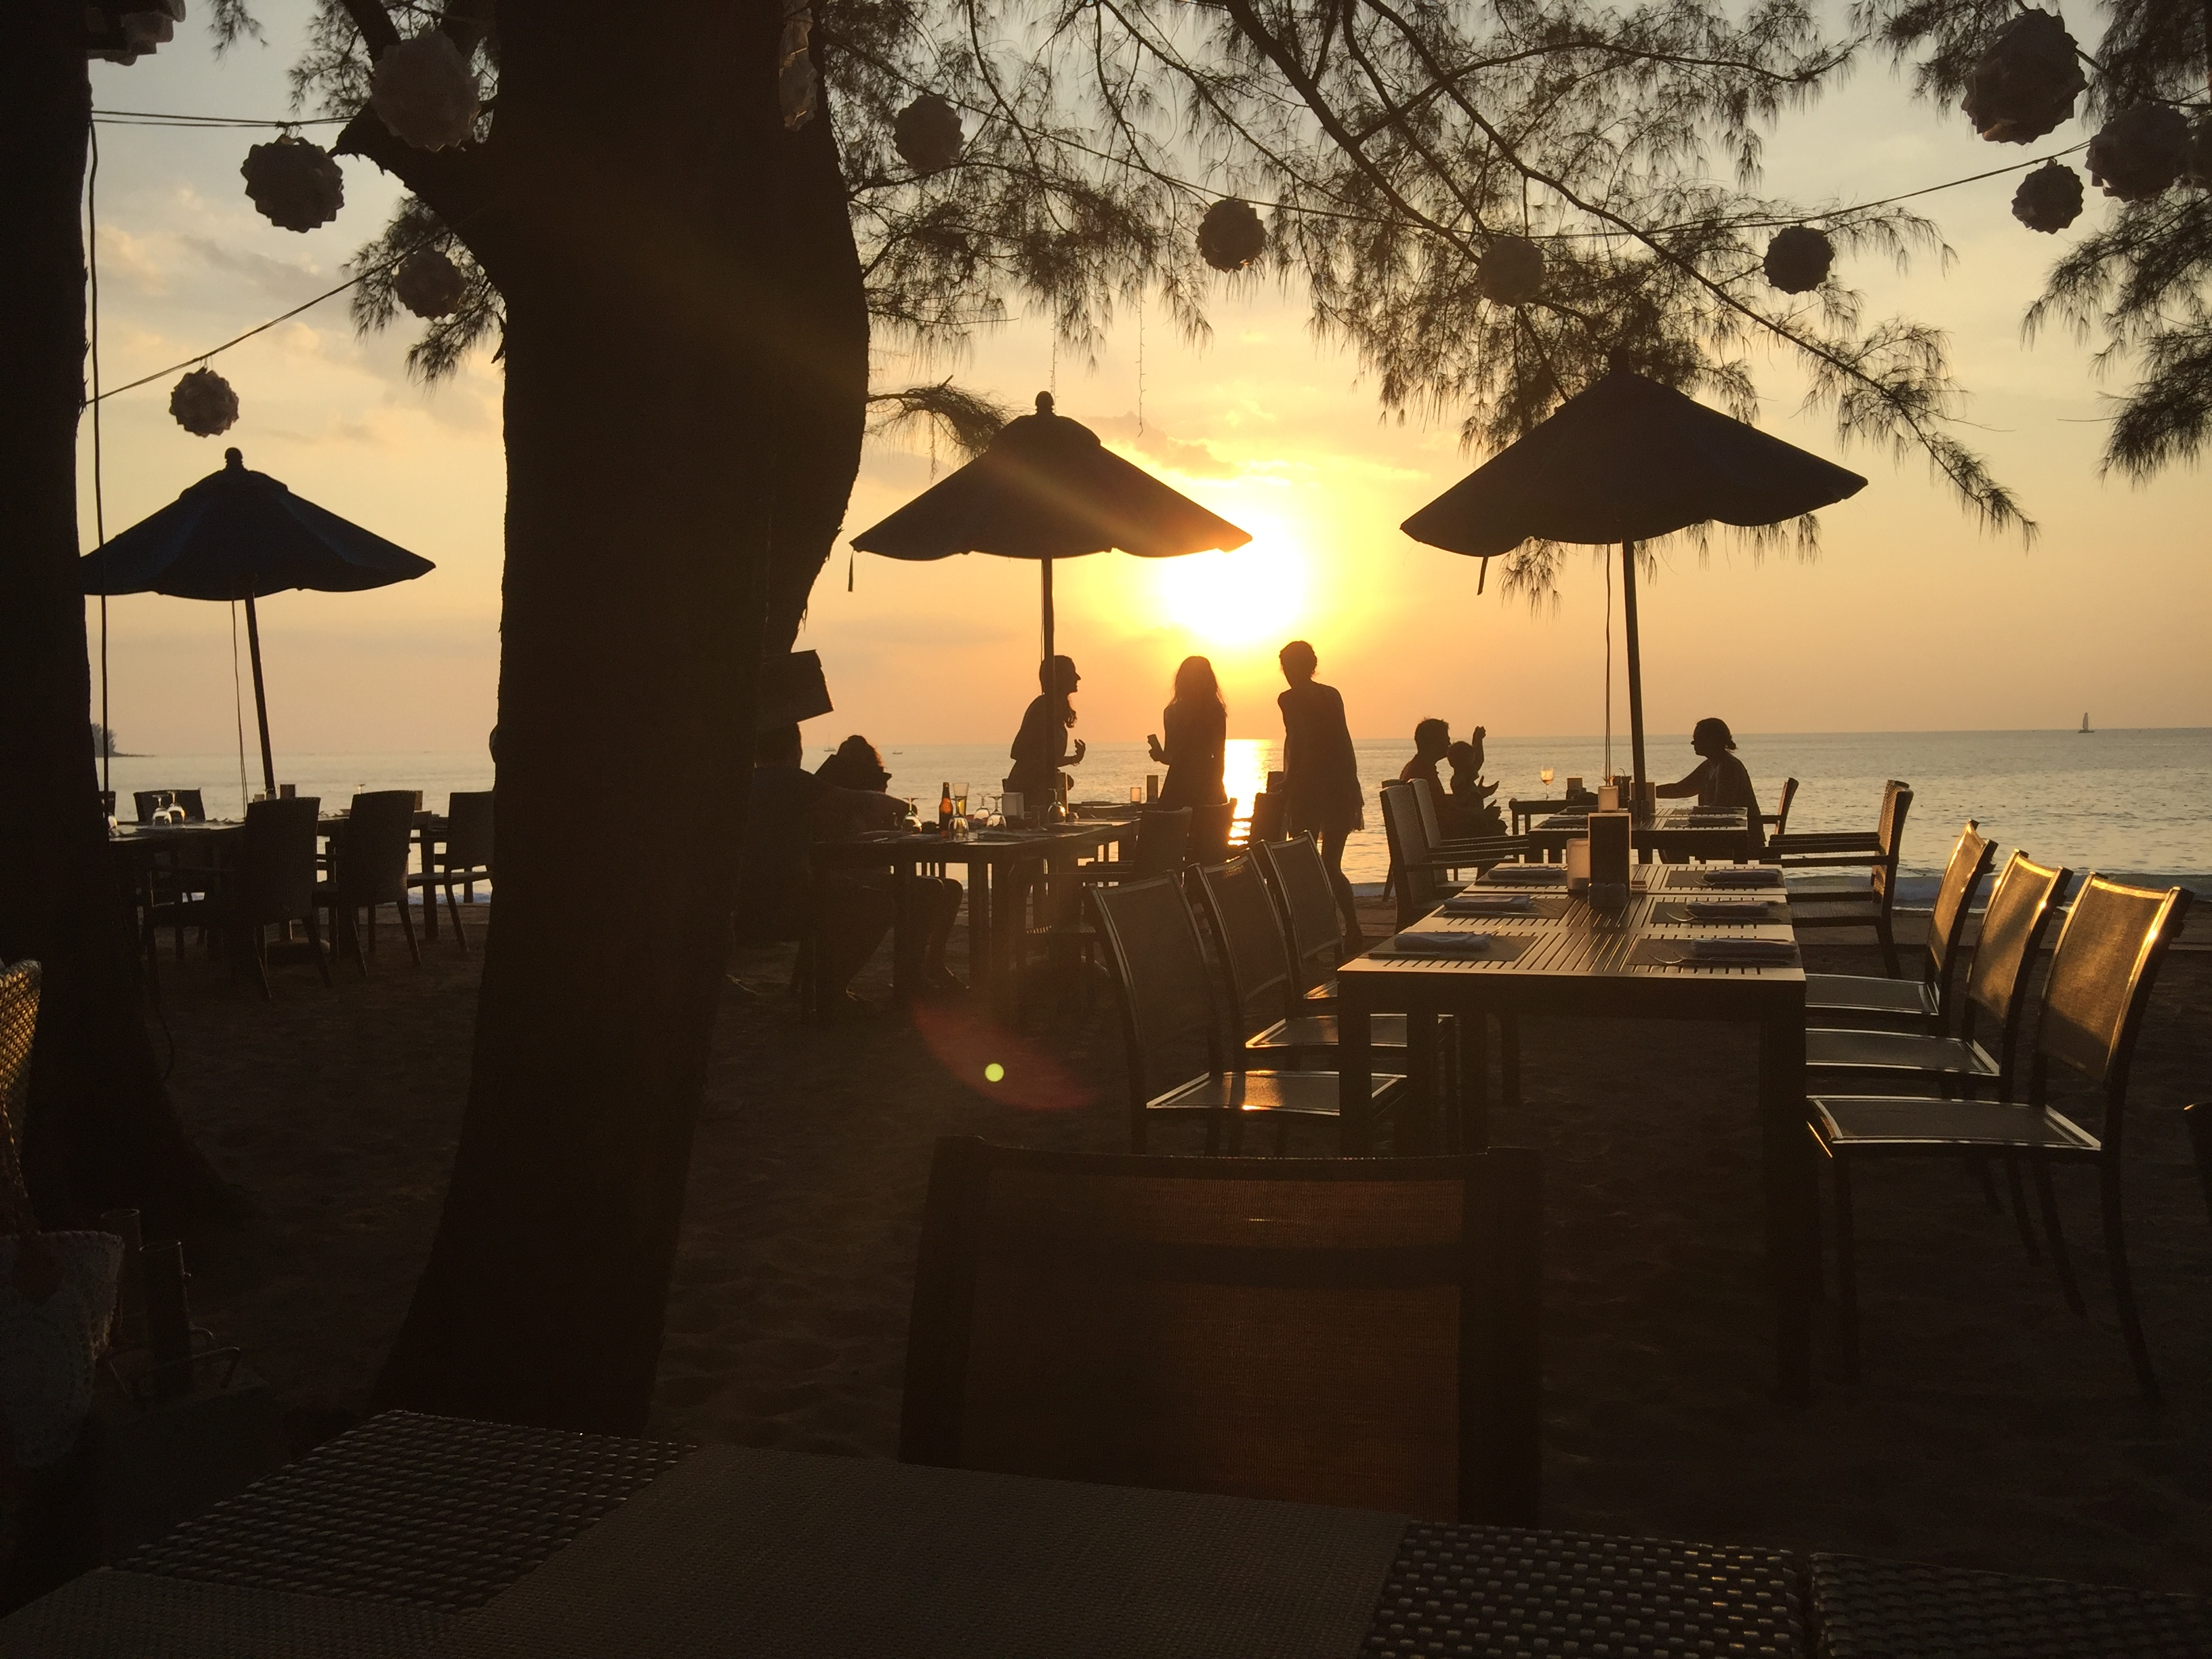 Sunset shot from a beach in Phuket